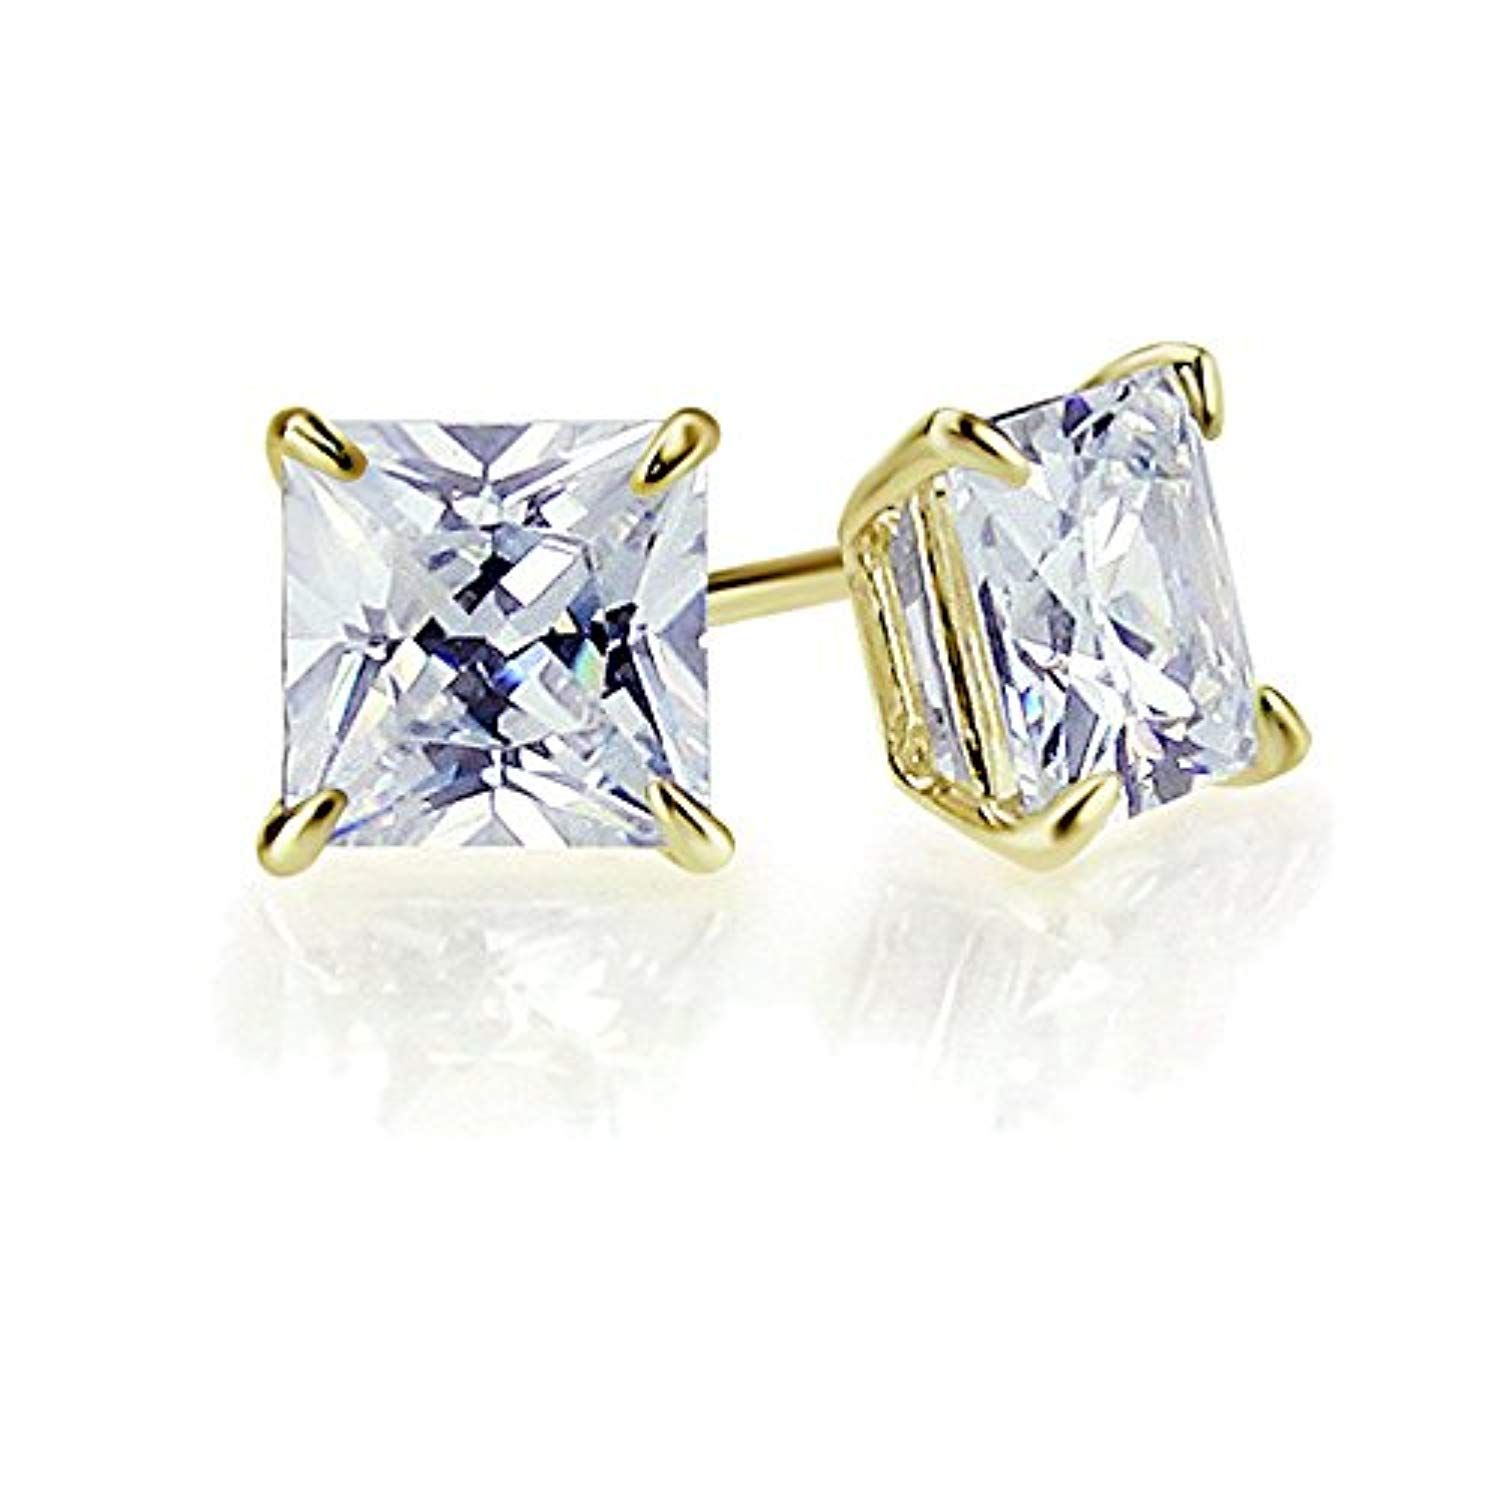 14k Solid White or Yellow Gold Cubic Zirconia Stud Earrings Basket Set CZ